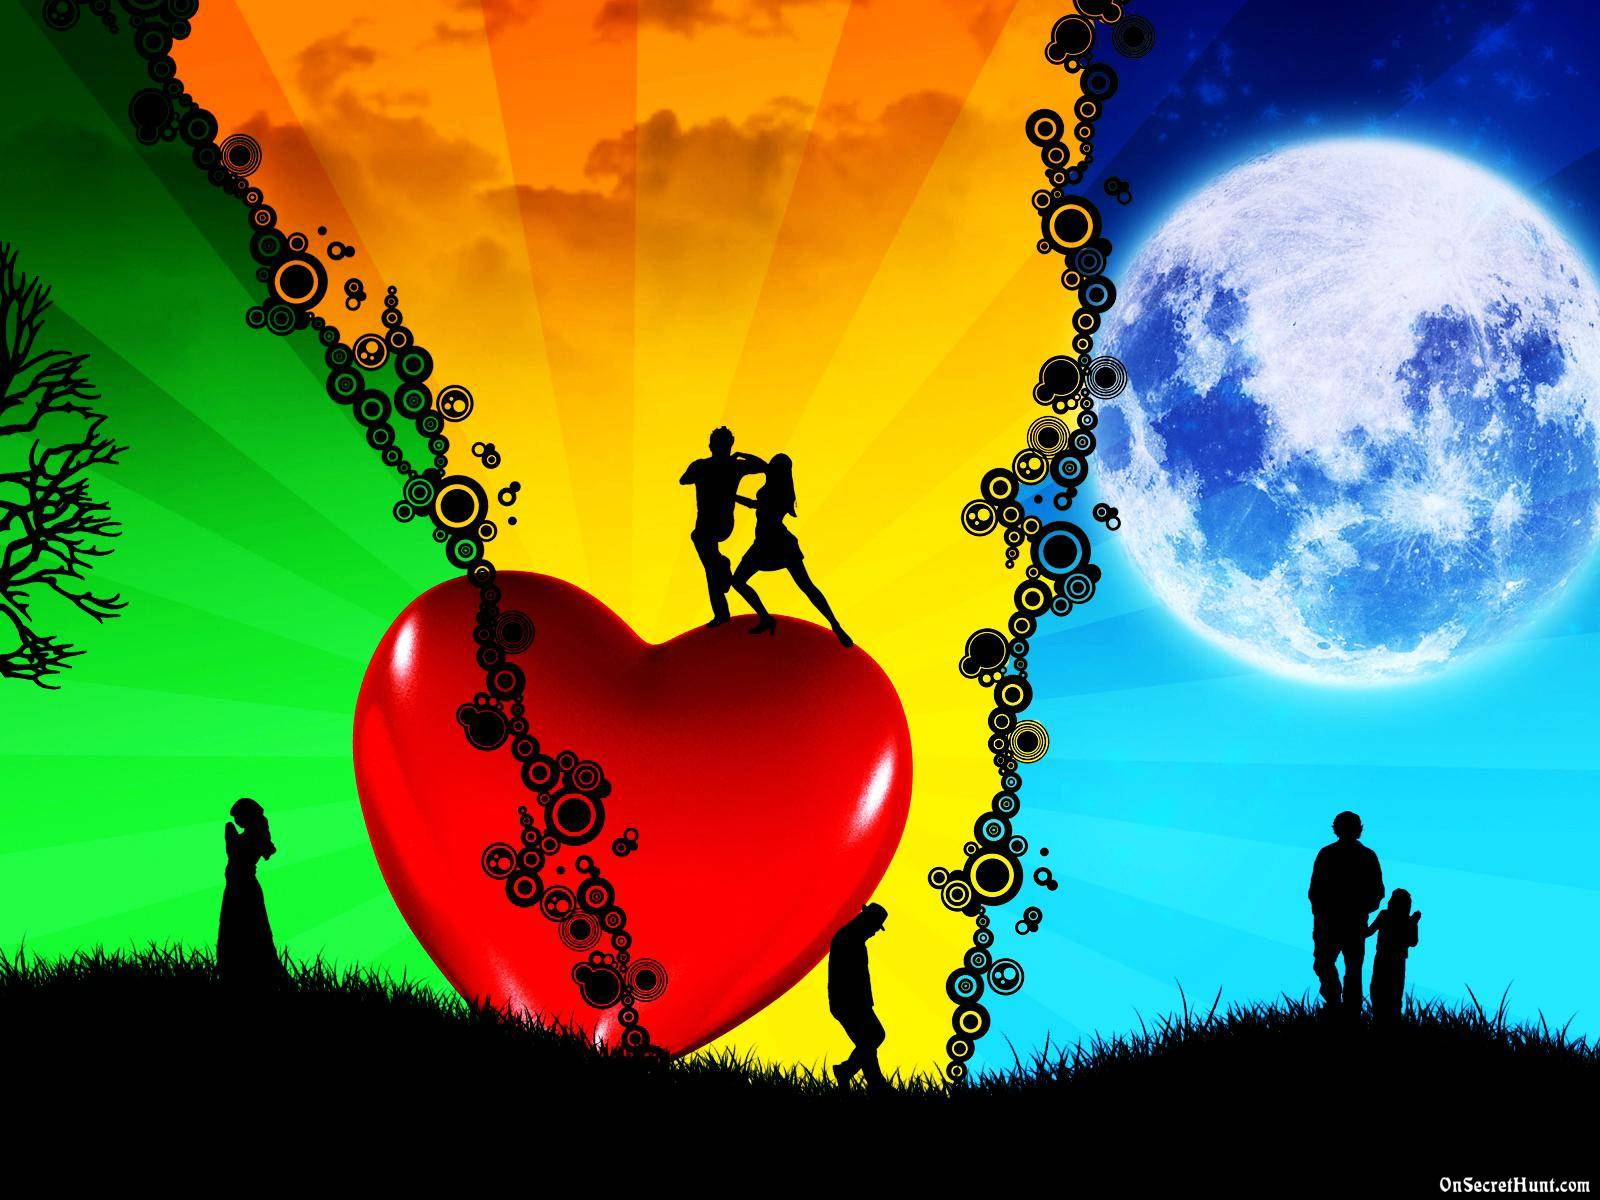 Love Images Hd And 3d : Love 3D Wallpapers - Wallpaper cave